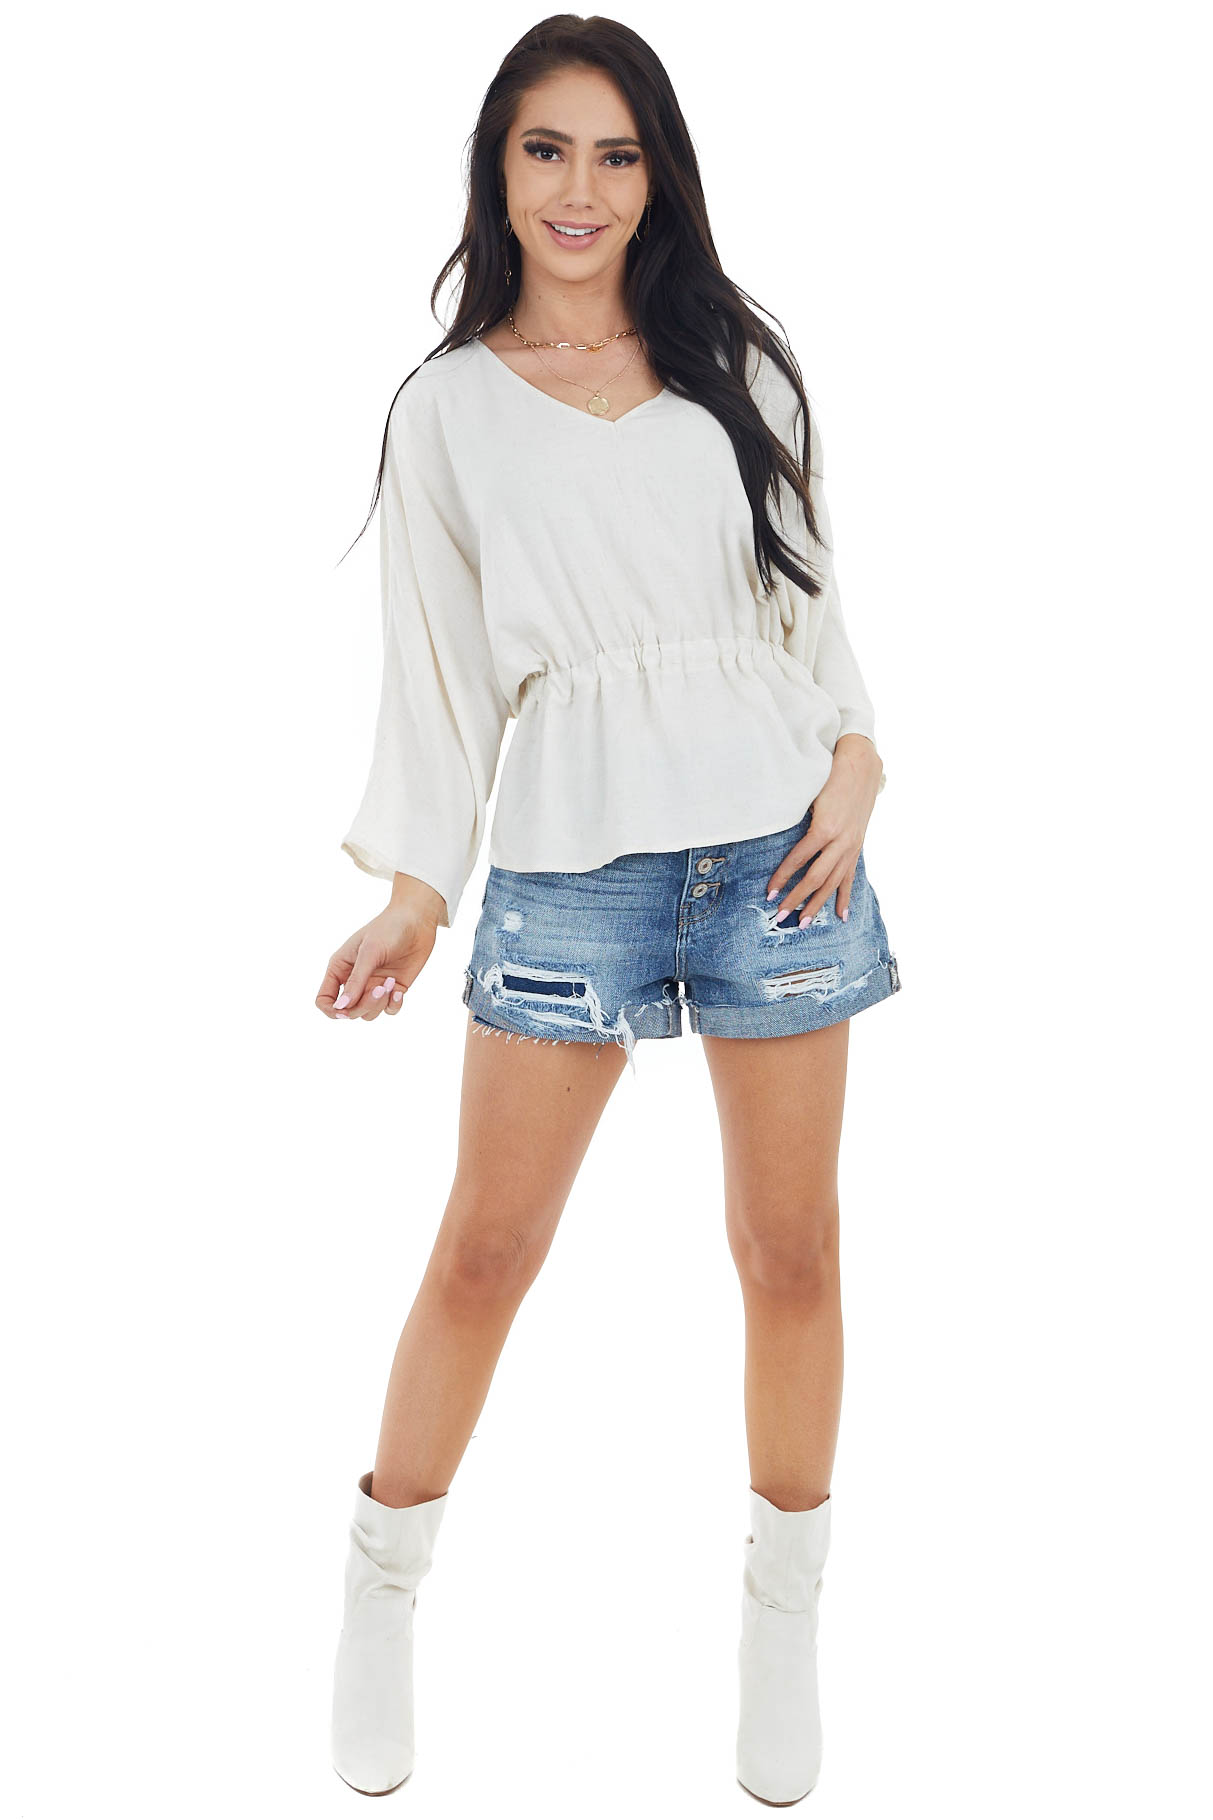 Beige V Neck Top with 3/4 Length Sleeve and Cinched Waist